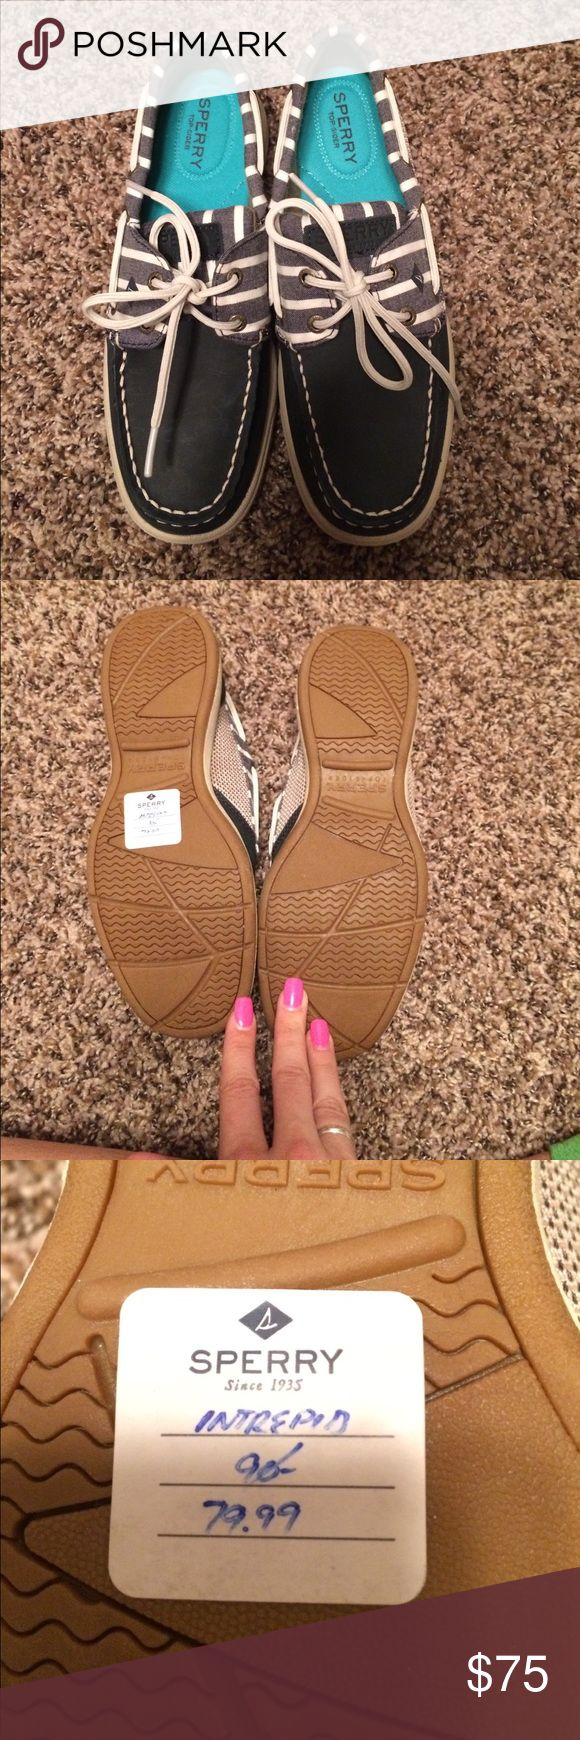 NWT. Sperry top sider. Brand new Sperry Top sider. Direct from the Sperry store. Make an offer. Sperry Top-Sider Shoes Flats & Loafers